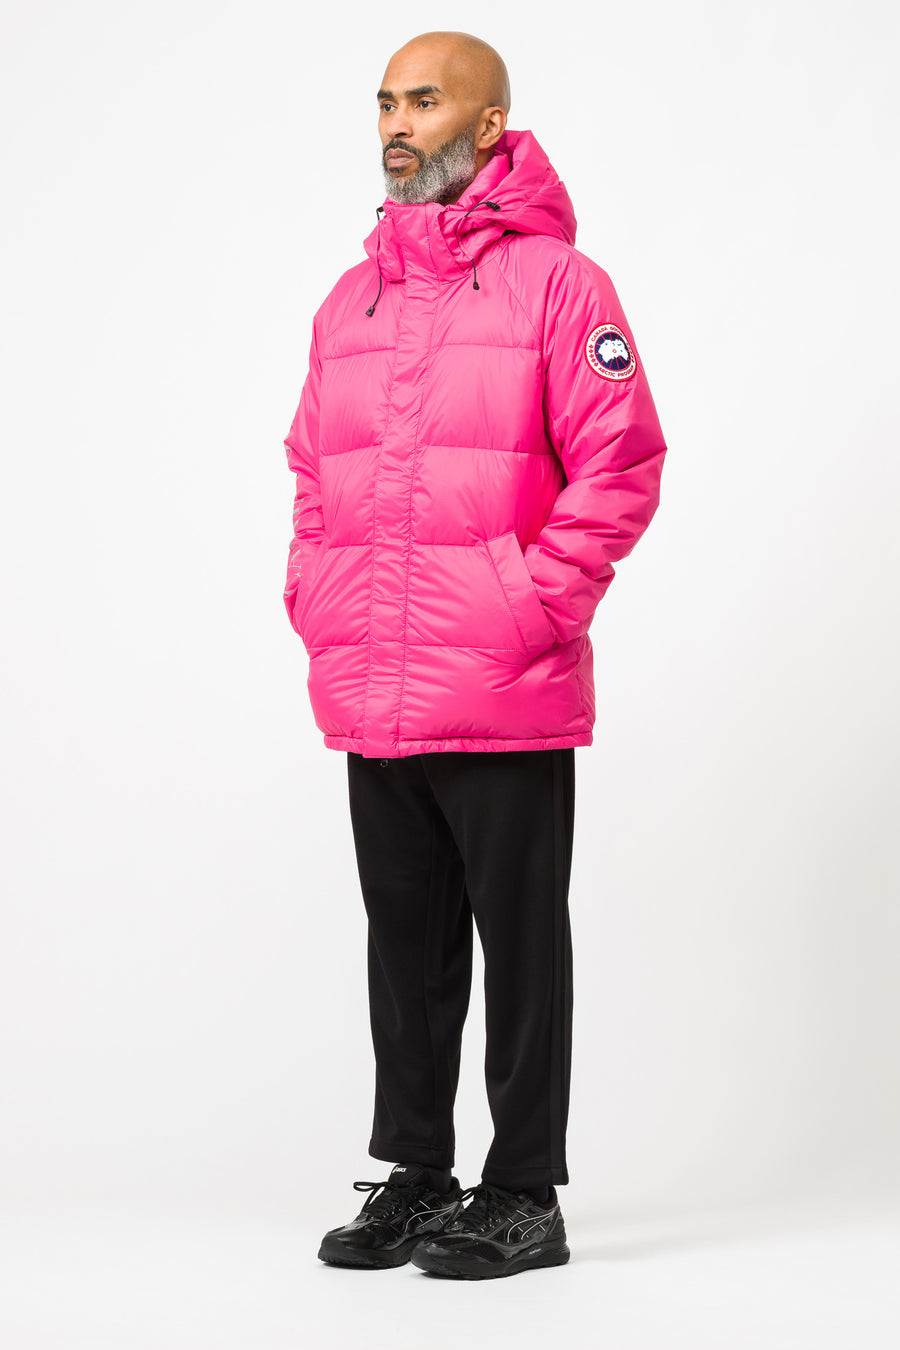 Canada Goose Approach Jacket in Summit Pink - Notre